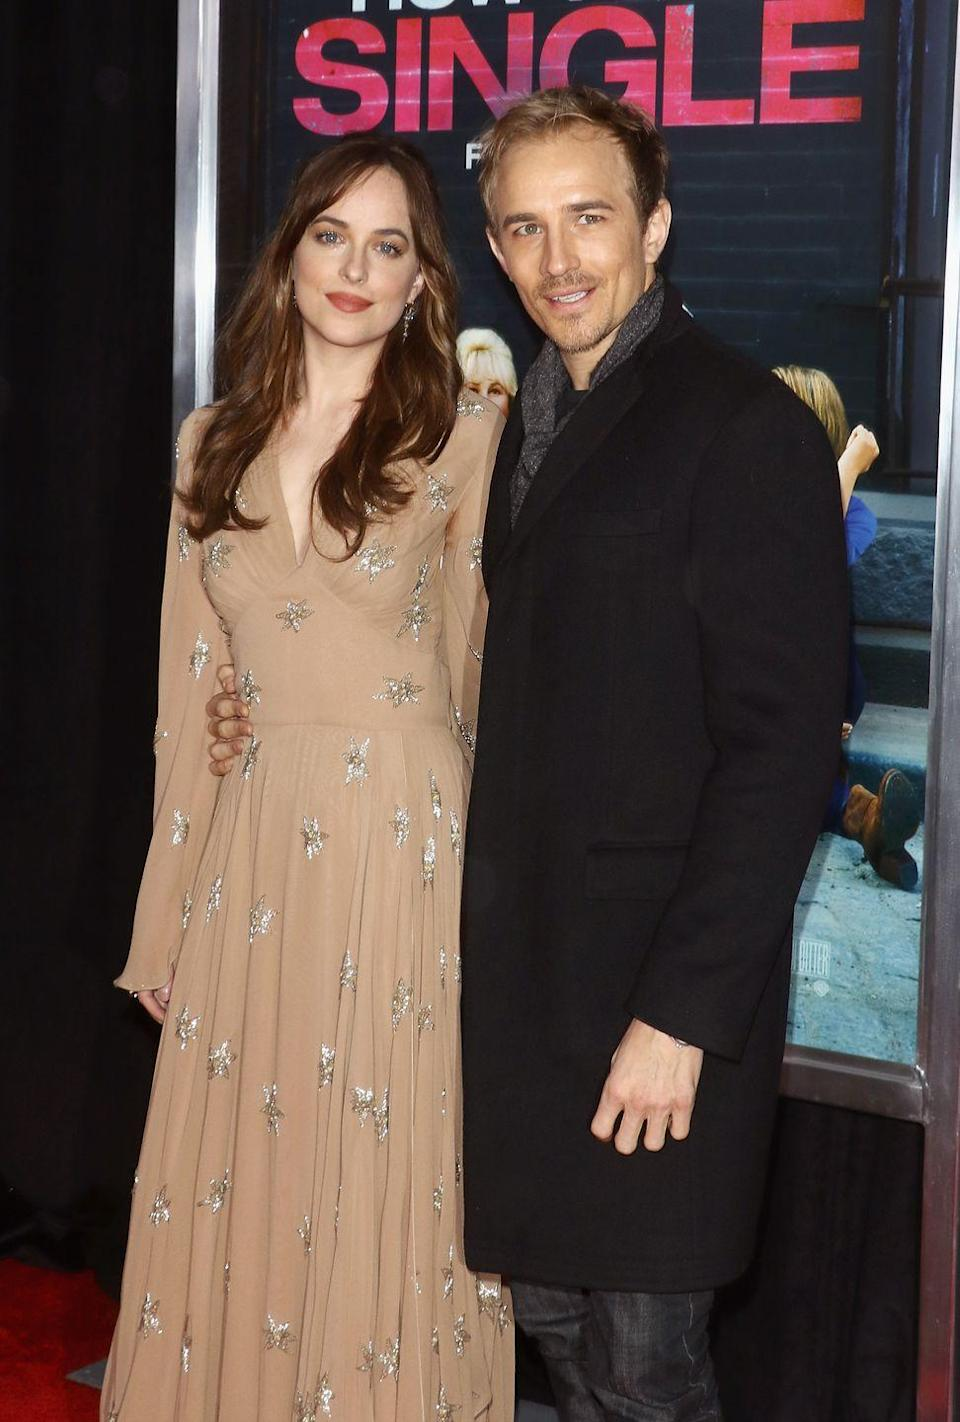 <p>Dakota Johnson was born during Melanie Griffith and Don Johnson's second marriage—that's right, they were married twice. And while her older brother, Jesse Johnson, may only be her half-sibling, there's a whole lot of similarities between them thanks to their father. </p>